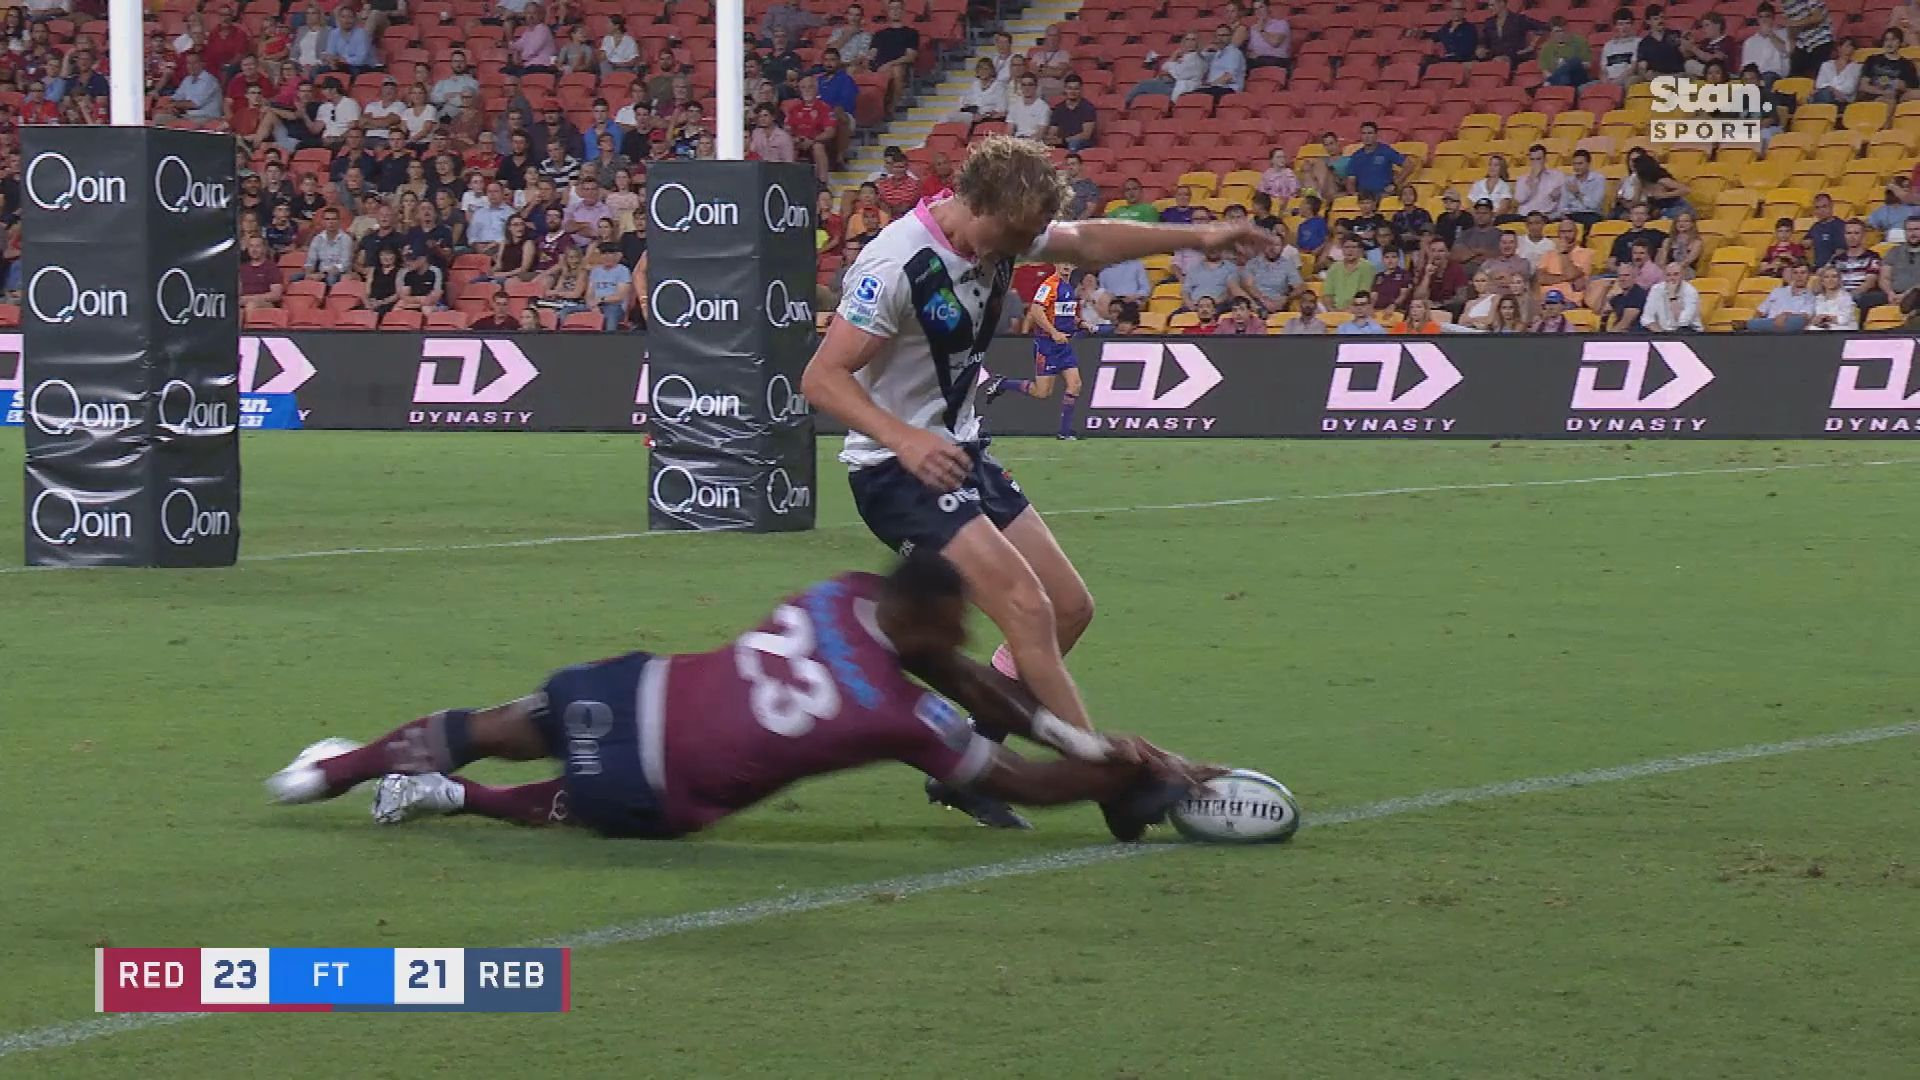 Reds recruit Suliasi Vunivalu wows Stan Sport pundits by almost scoring with his first touch in Super Rugby